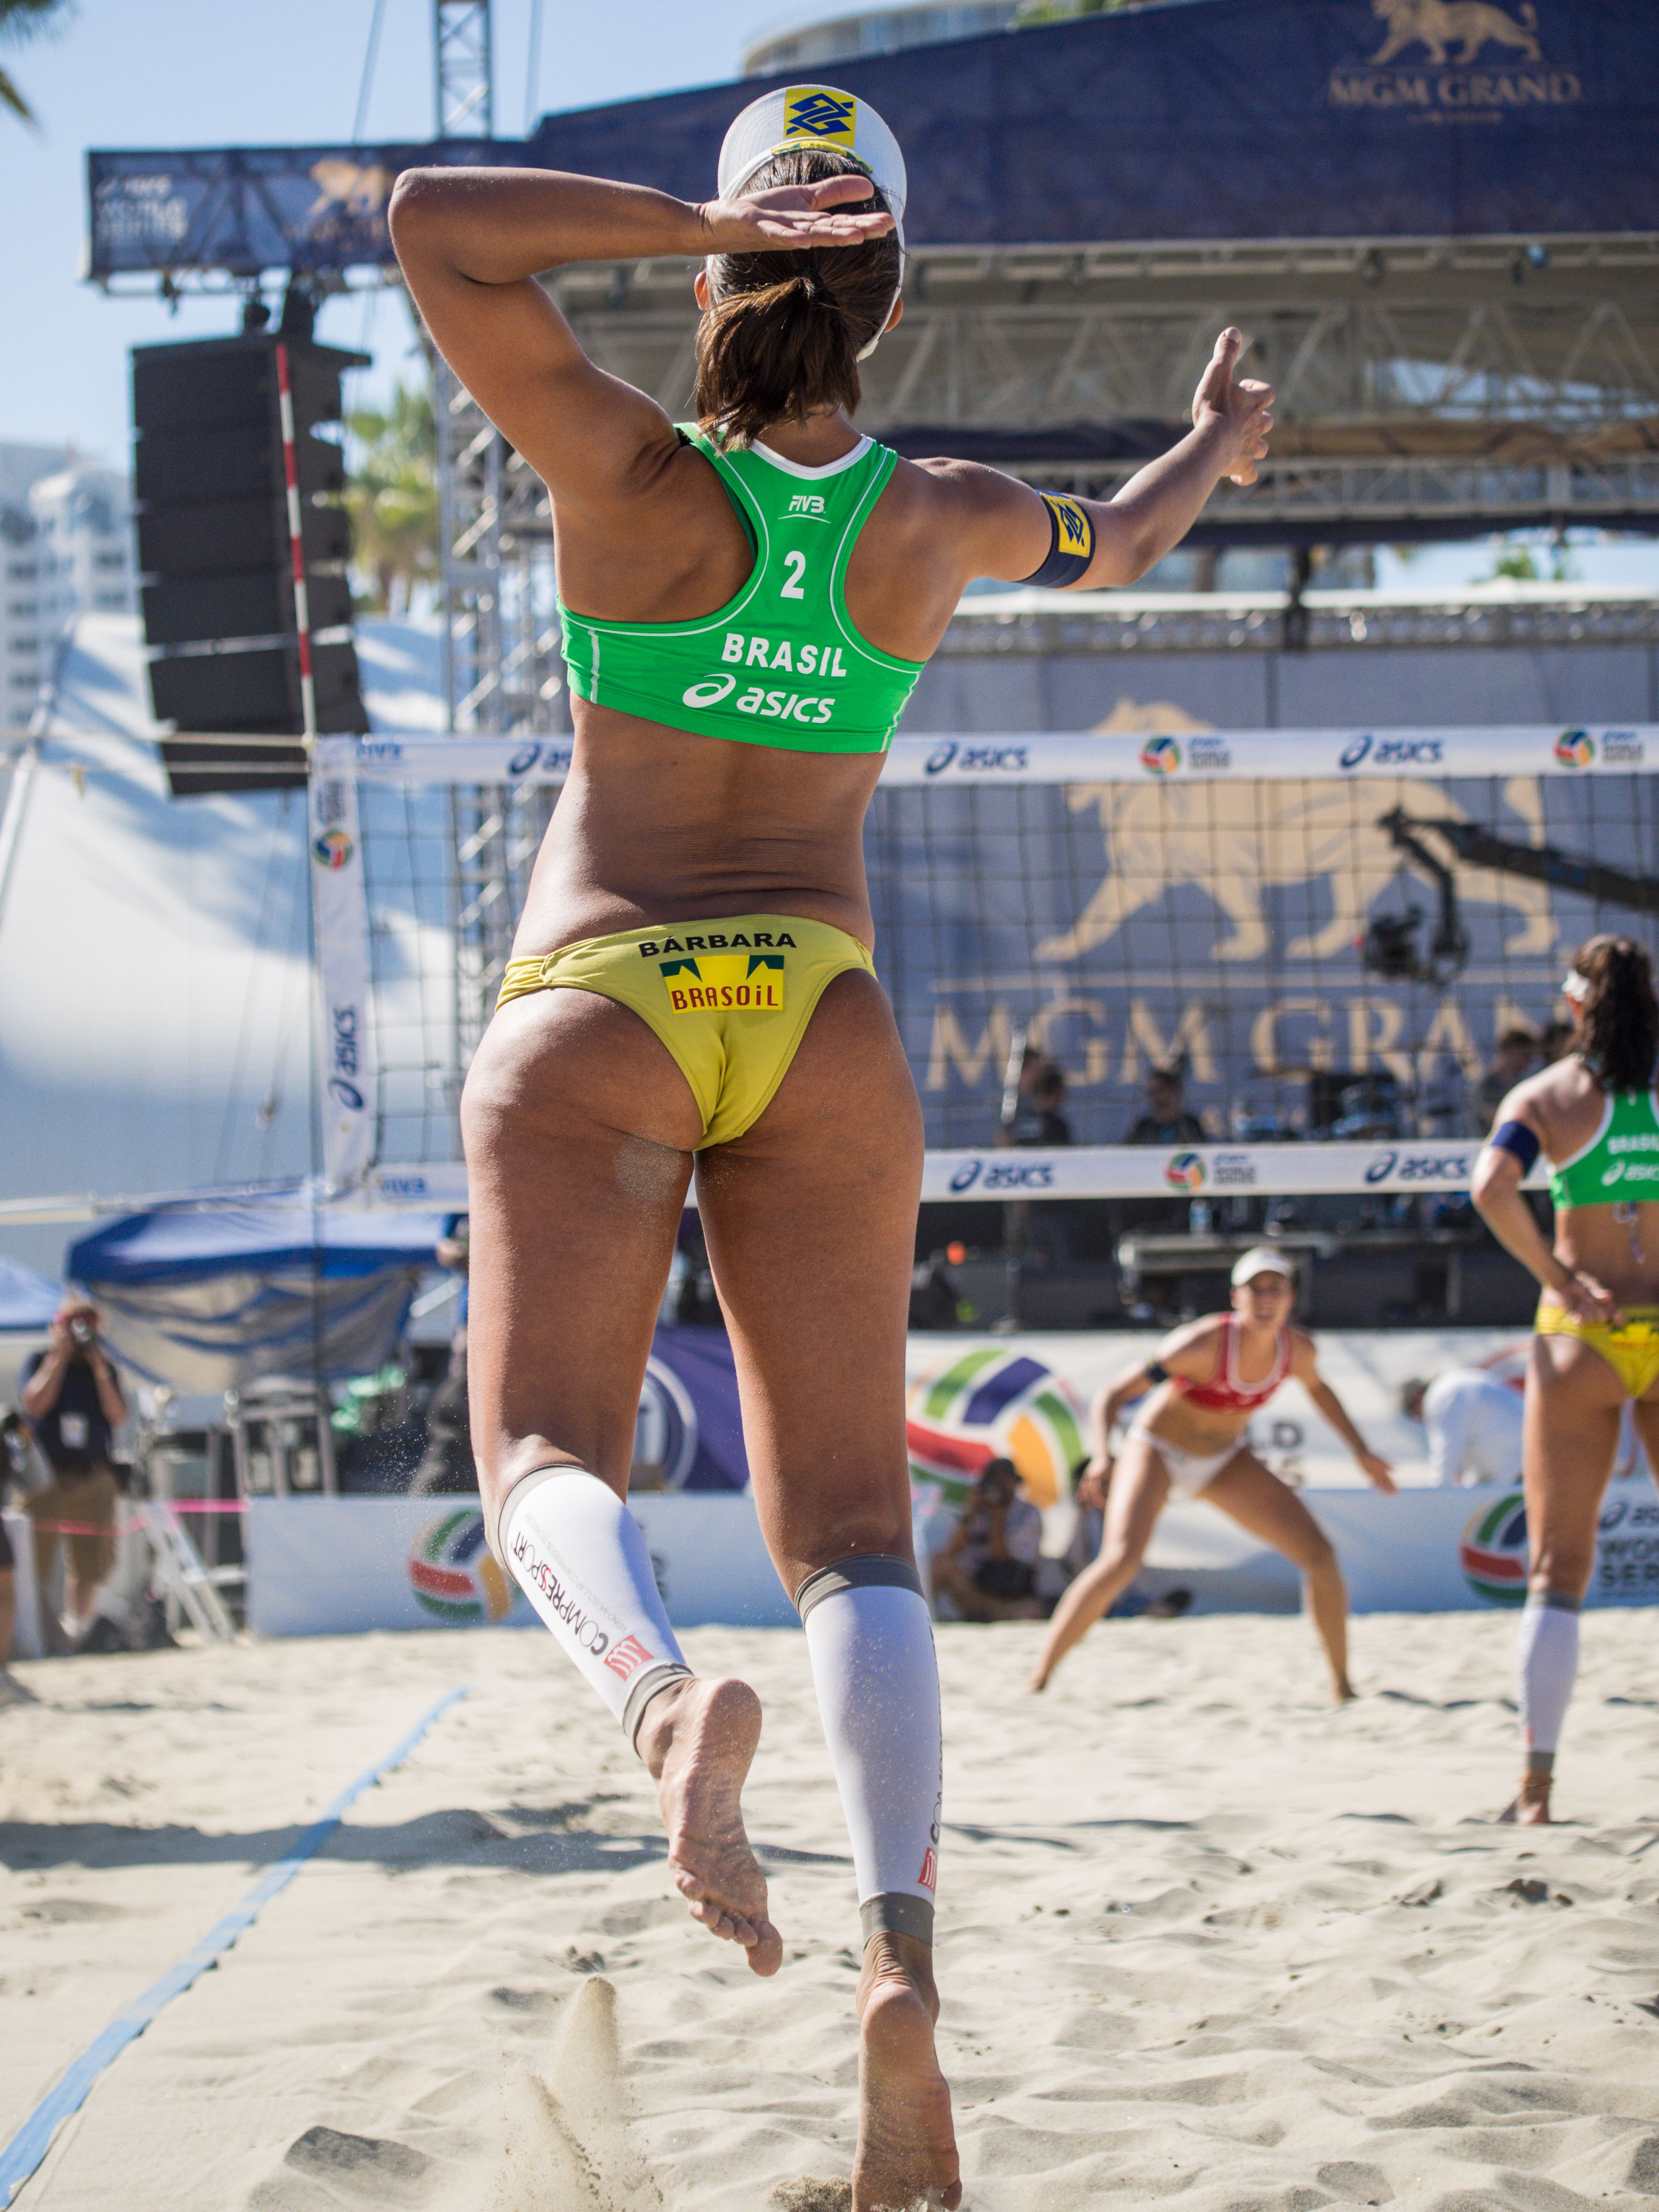 Pin De Steven Jones En Beach Volleyball En 2020 Voleibol Playero Deportes Voleibol